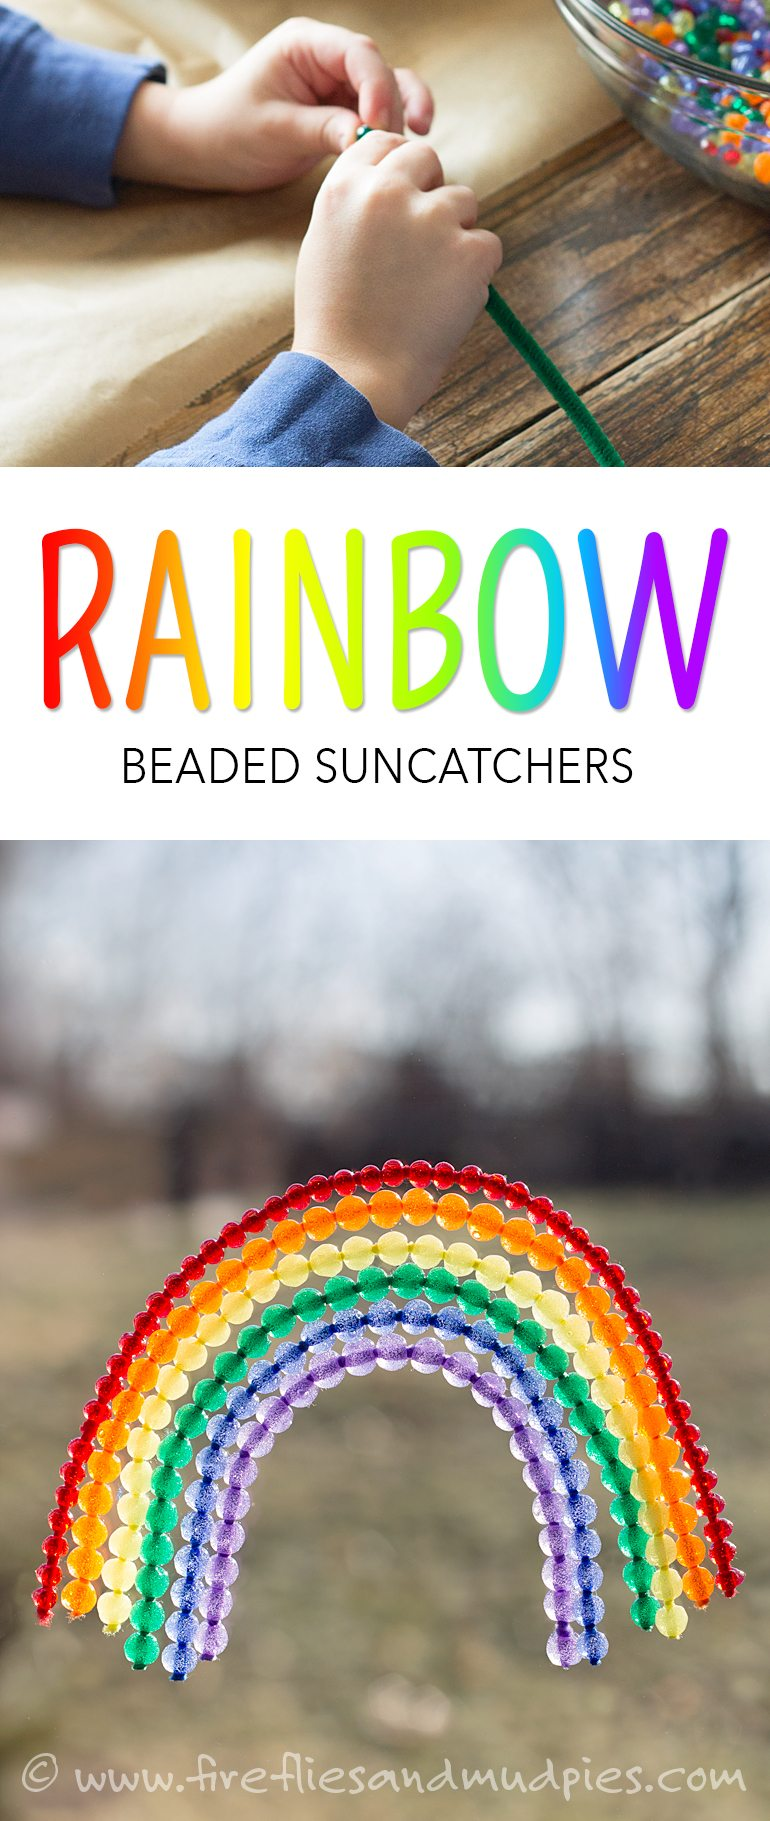 Aren't these rainbow beaded suncatchers gorgeous! I love how they brighten up dreary winter windows! | Fireflies and Mud Pies